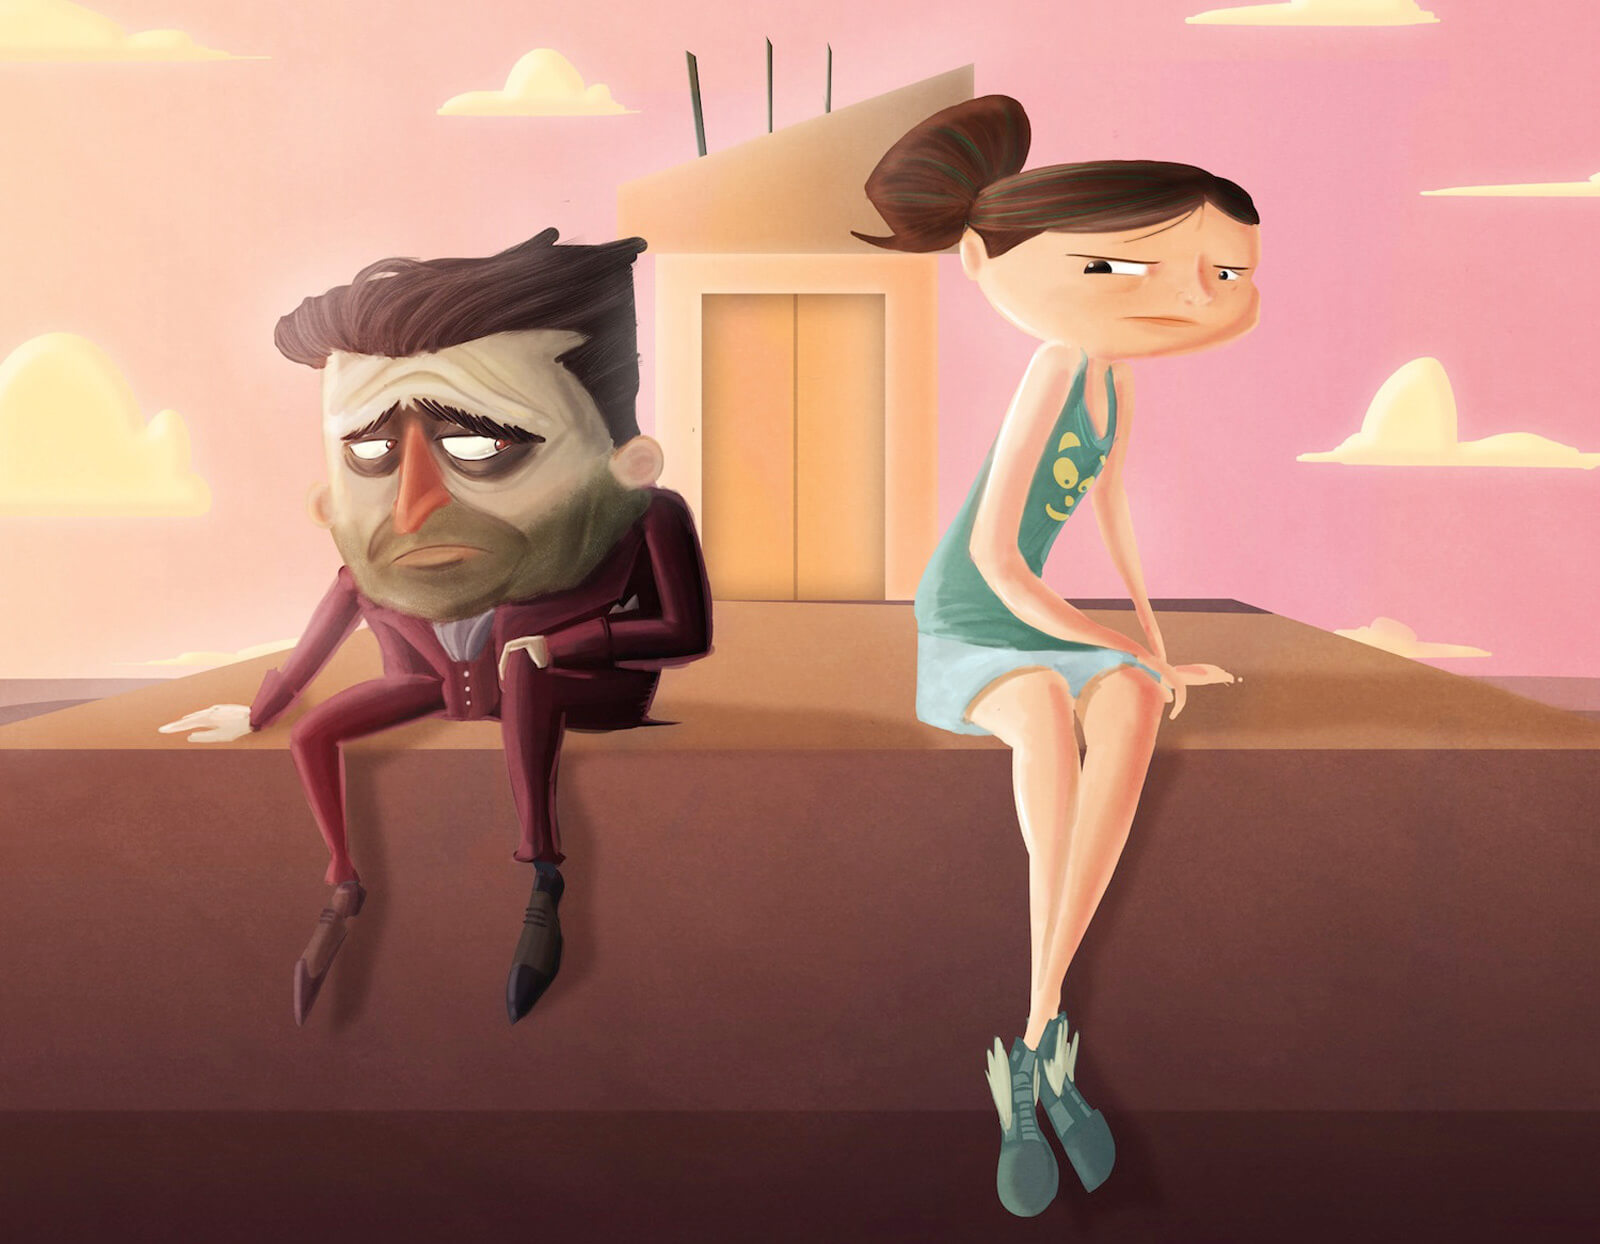 Concept art for the film Super Secret, a large-headed man in a maroon suit sits next to a taller girl in a teal tank top